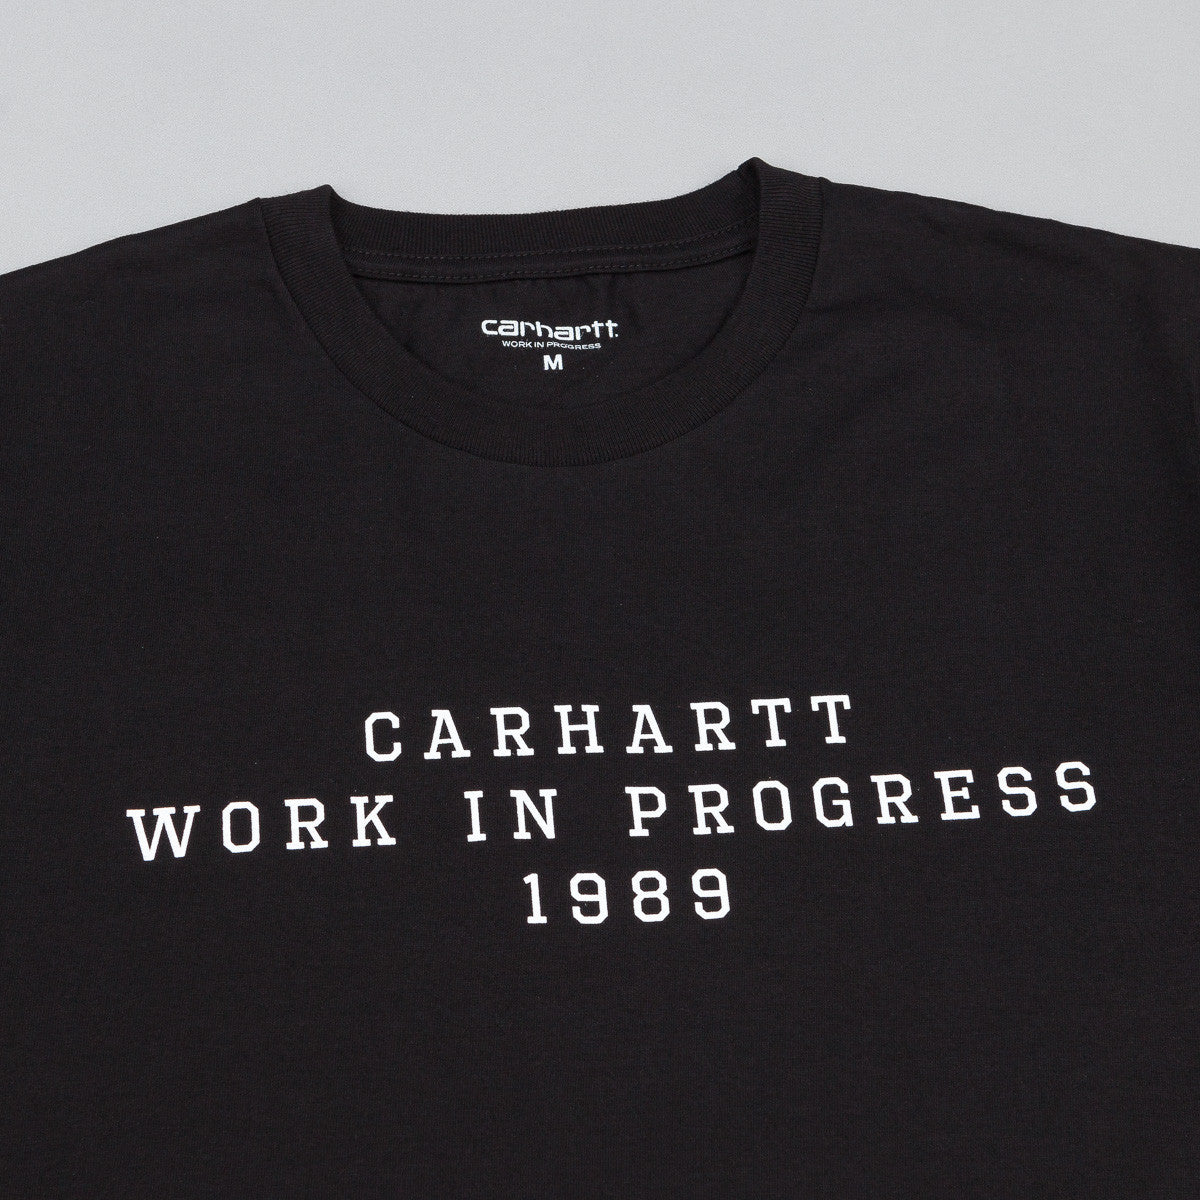 Carhartt Imprint T-Shirt - Black / White